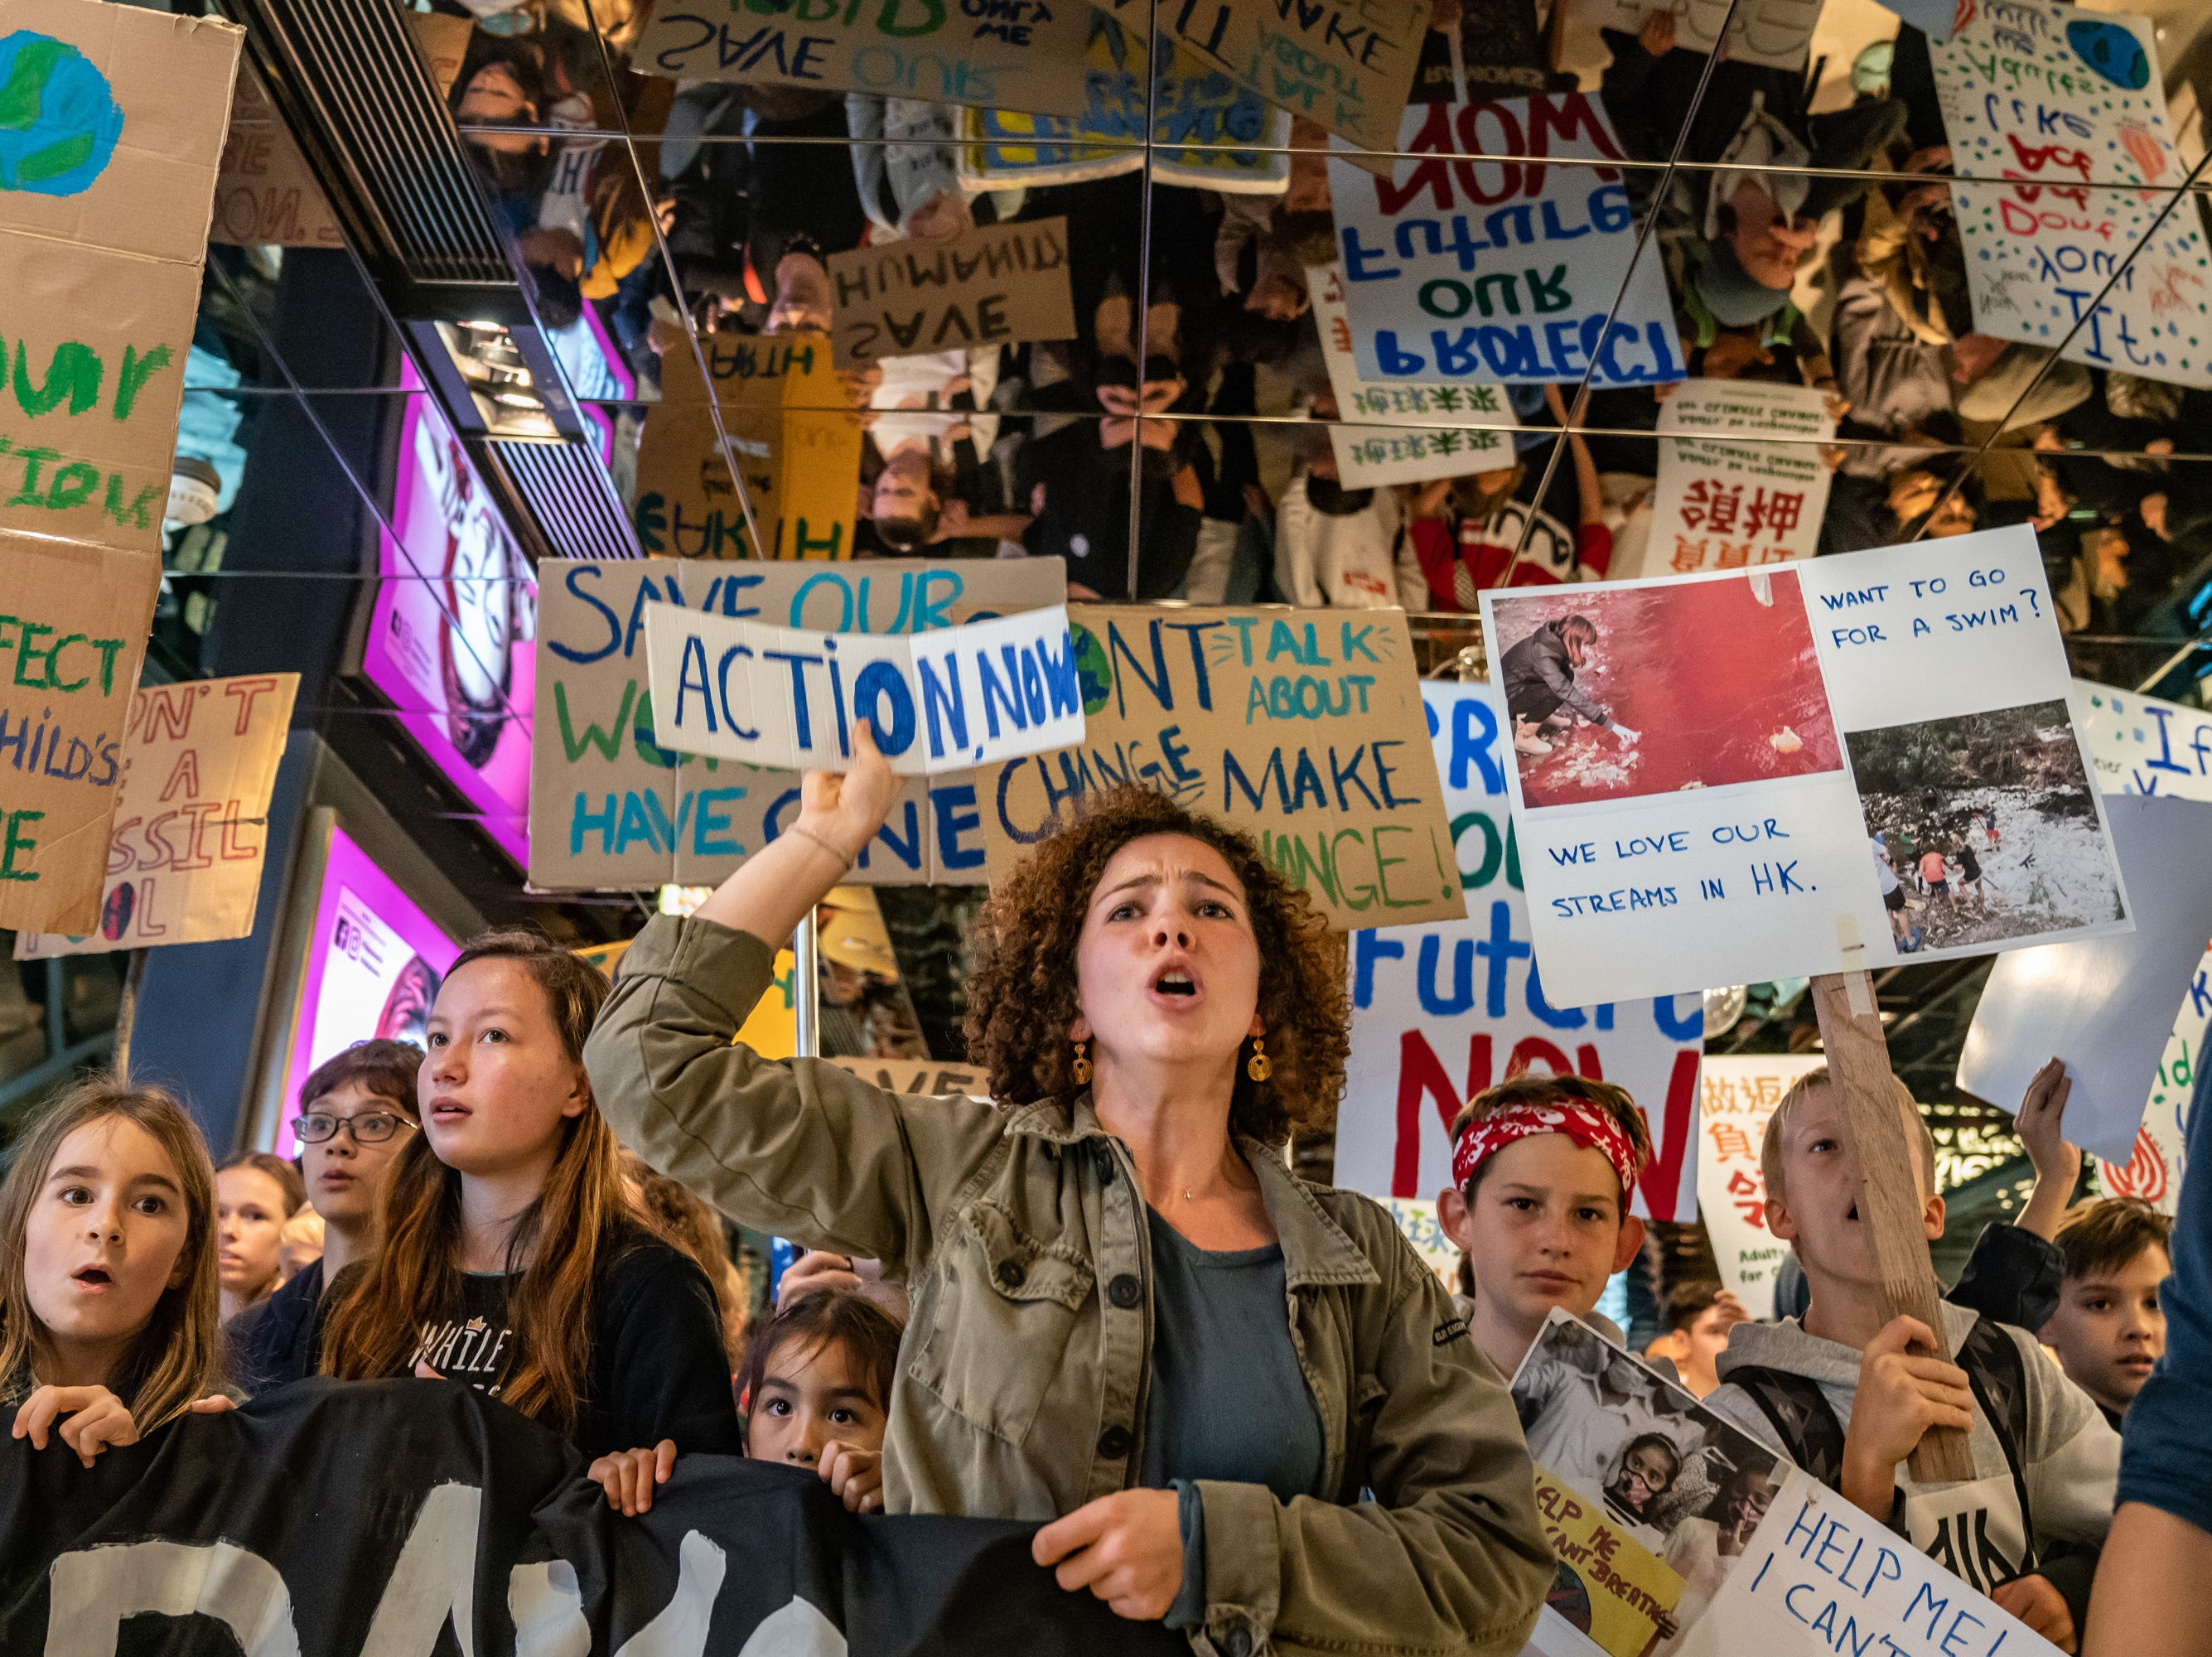 Students hold placards and shout slogans as they participate in a protest on March 15, 2019 in Hong Kong, China.